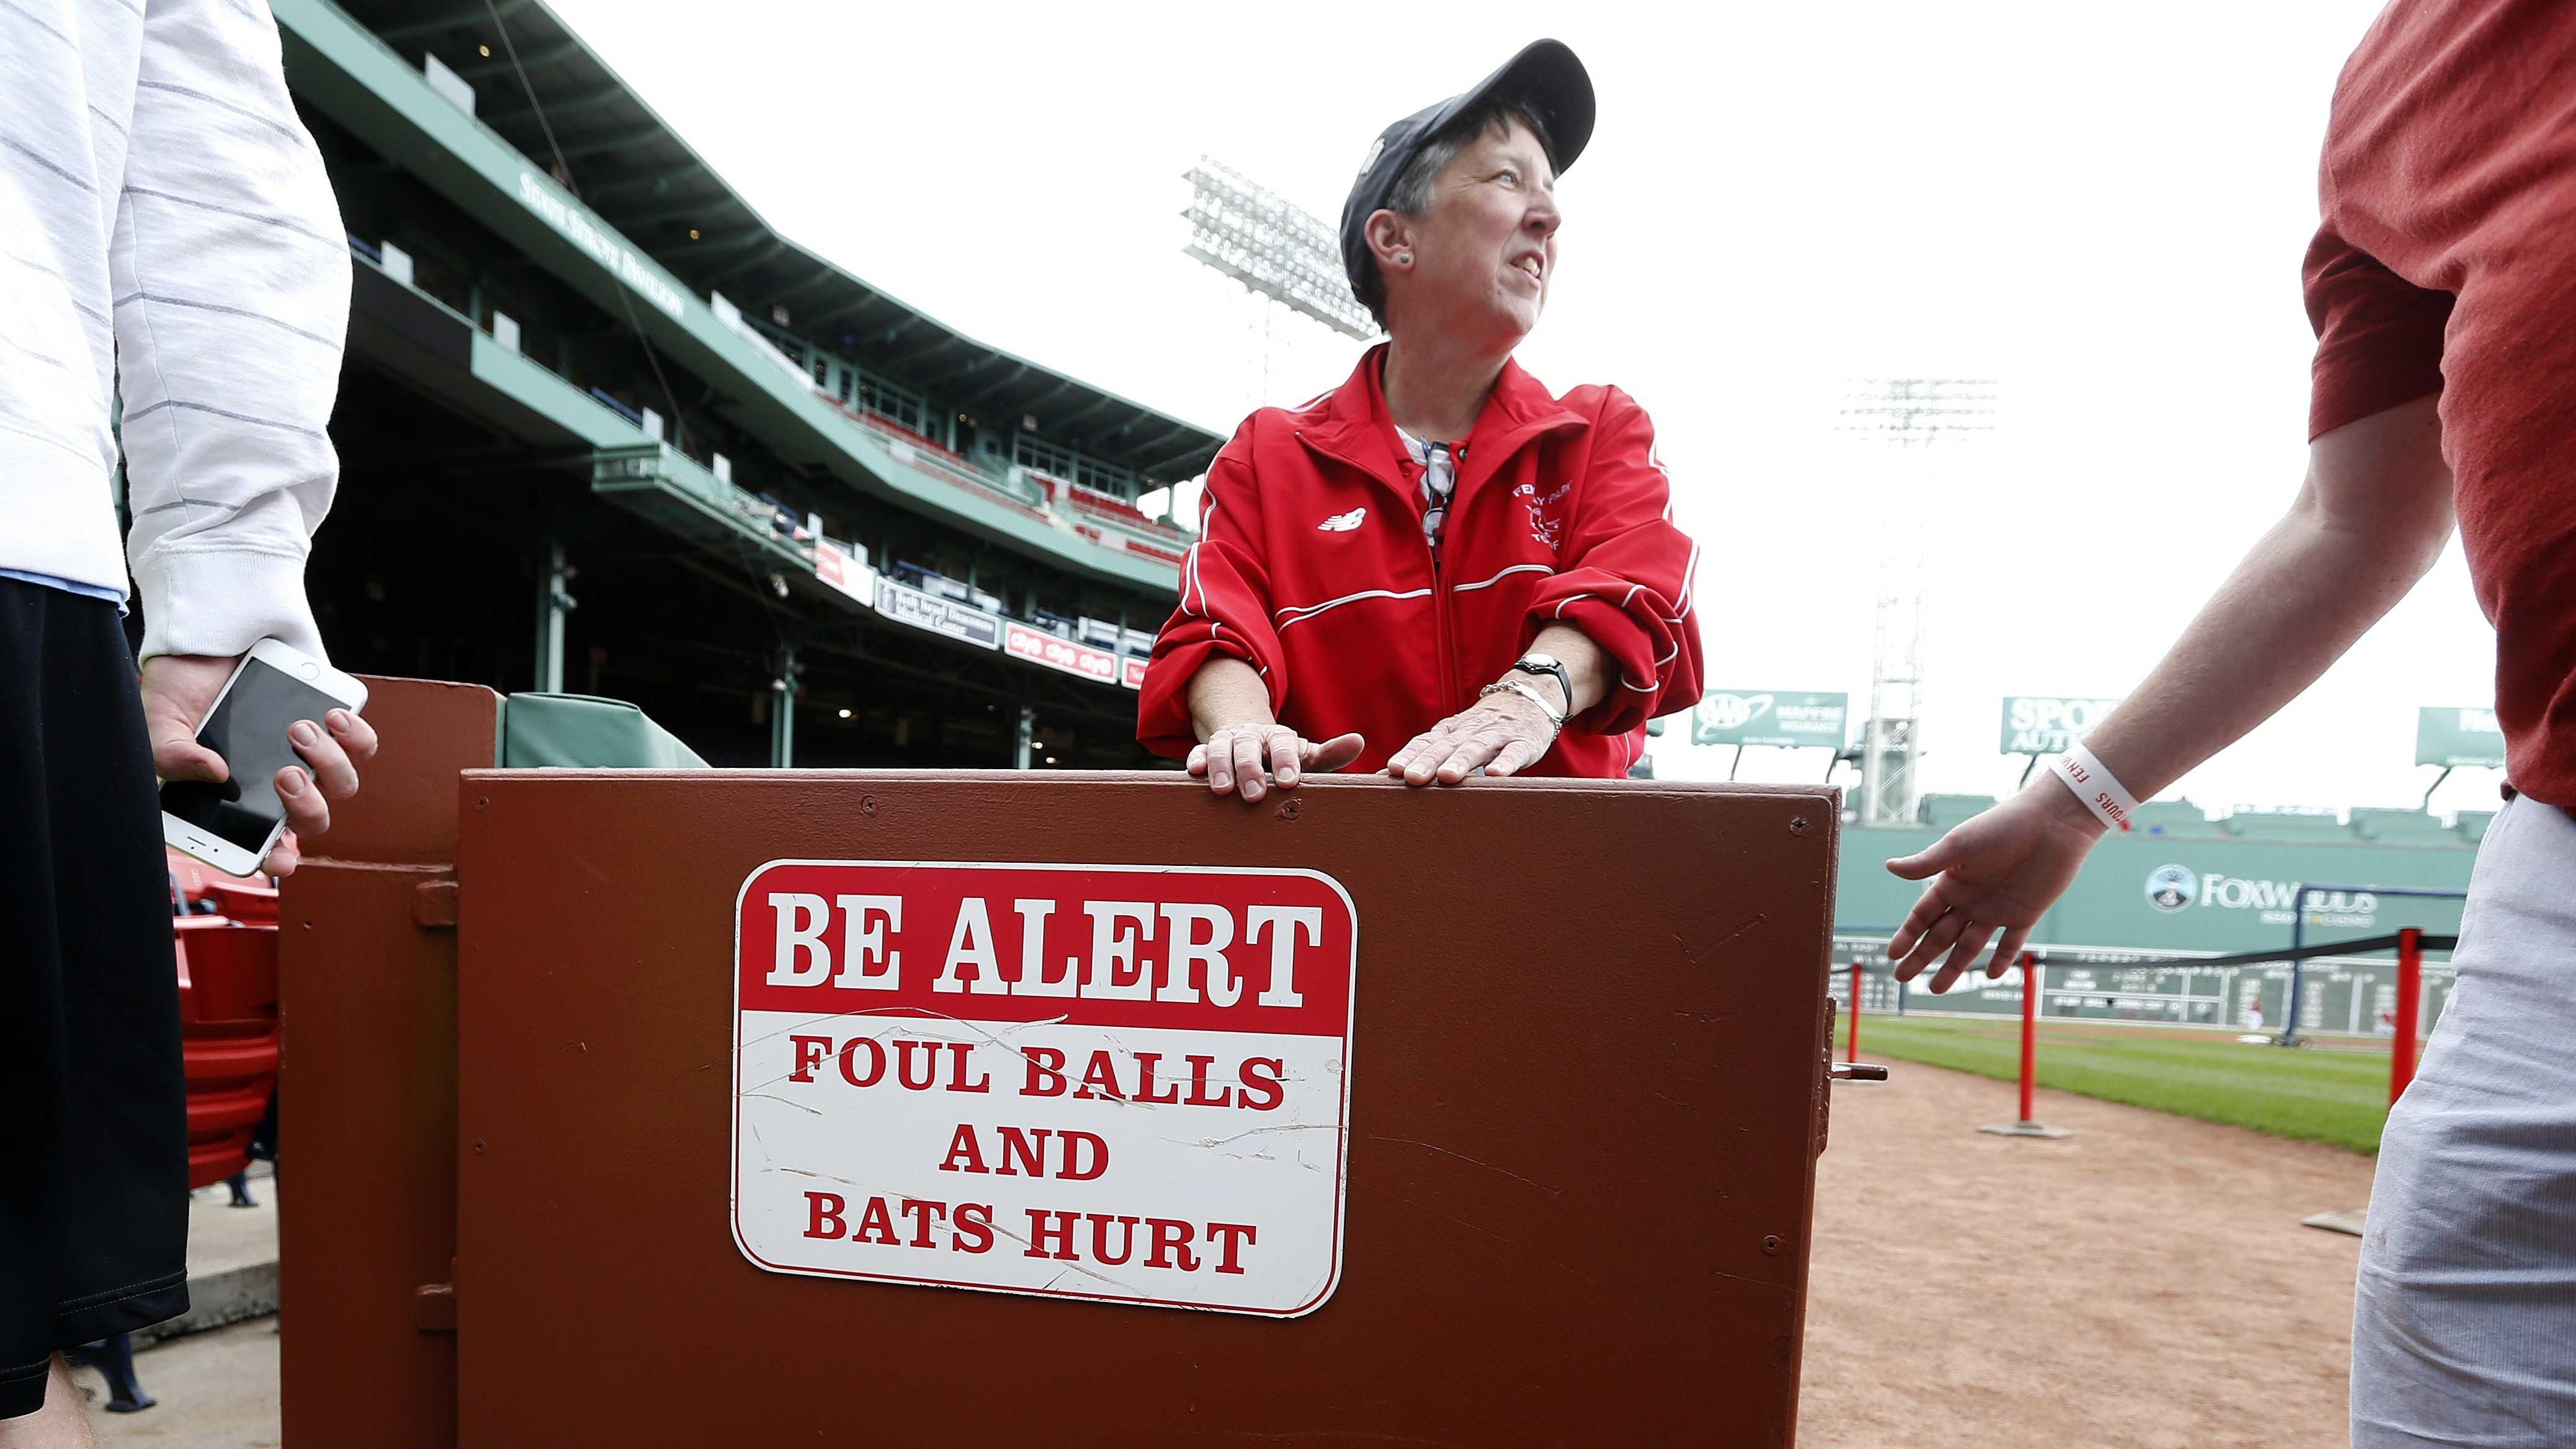 A tour guide at Fenway Park holds open a door to the stands which displays a warning sign, Saturday, June 6, 2015, before a baseball game between the Boston Red Sox and the Oakland Athletics in Boston. A woman was hit and seriously injured by a broken bat during the game on Friday.